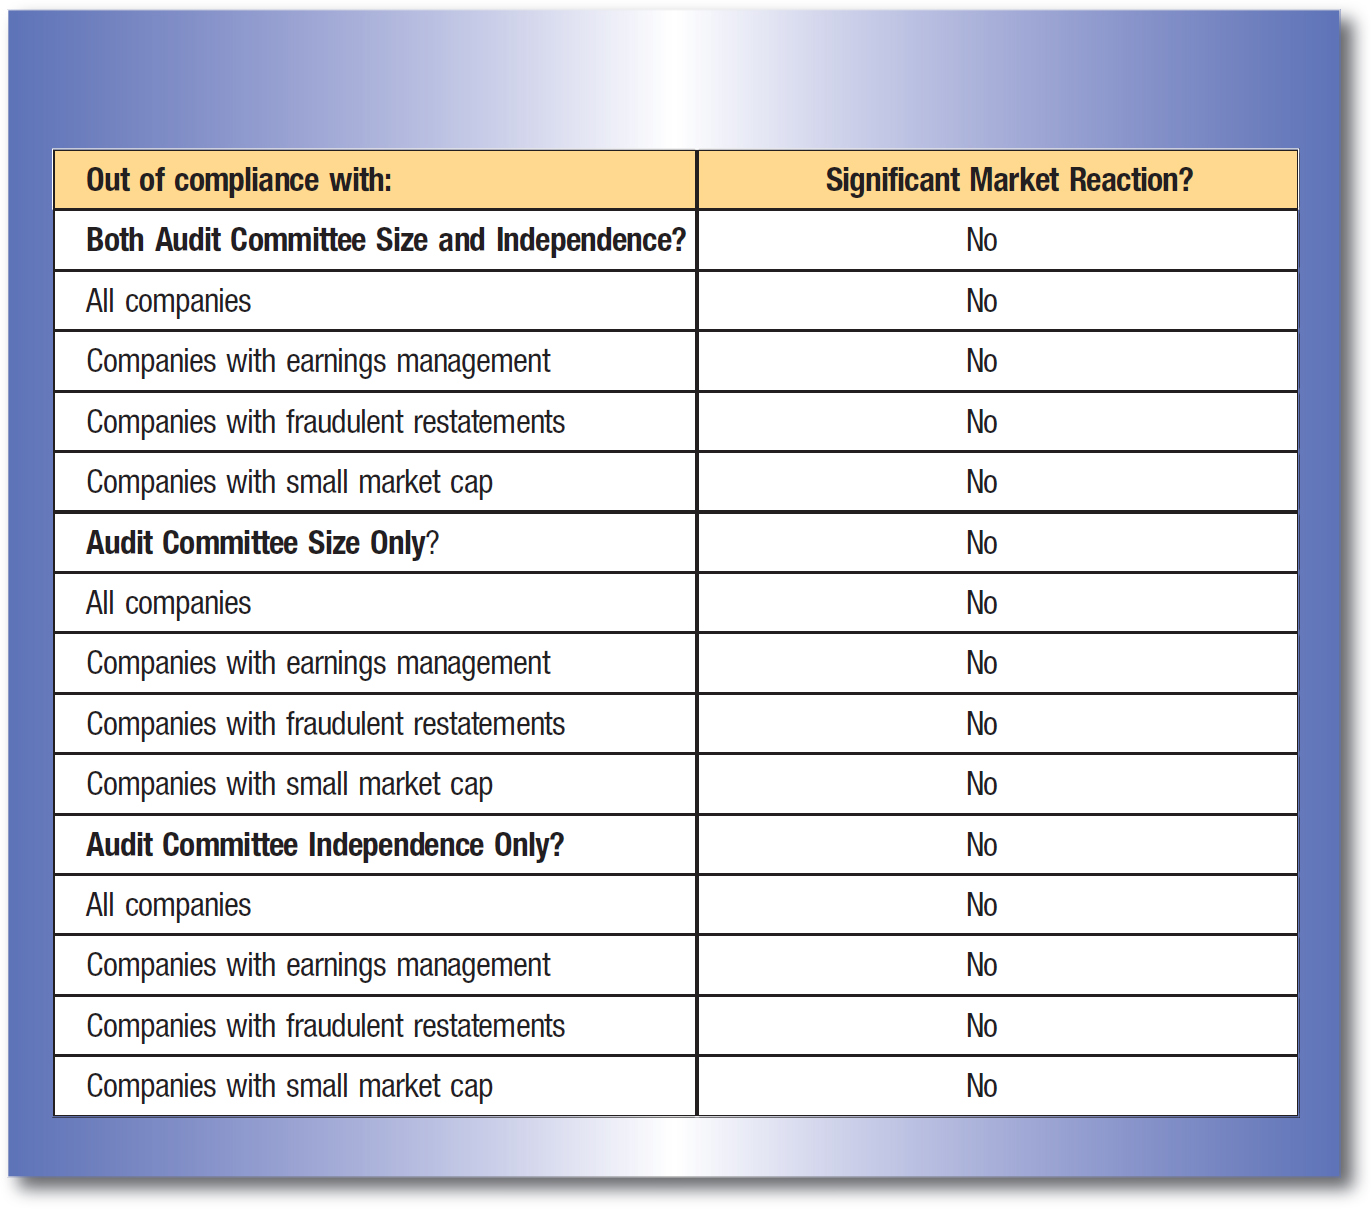 Out of compliance with:; Significant Market Reaction? Both Audit Committee Size and Independence?; No All companies; No Companies with earnings management; No Companies with fraudulent restatements; No Companies with small market cap; No Audit Committee Size Only?; No All companies; No Companies with earnings management; No Companies with fraudulent restatements; No Companies with small market cap; No Audit Committee Independence Only?; No All companies; No Companies with earnings management; No Companies with fraudulent restatements; No Companies with small market cap; No